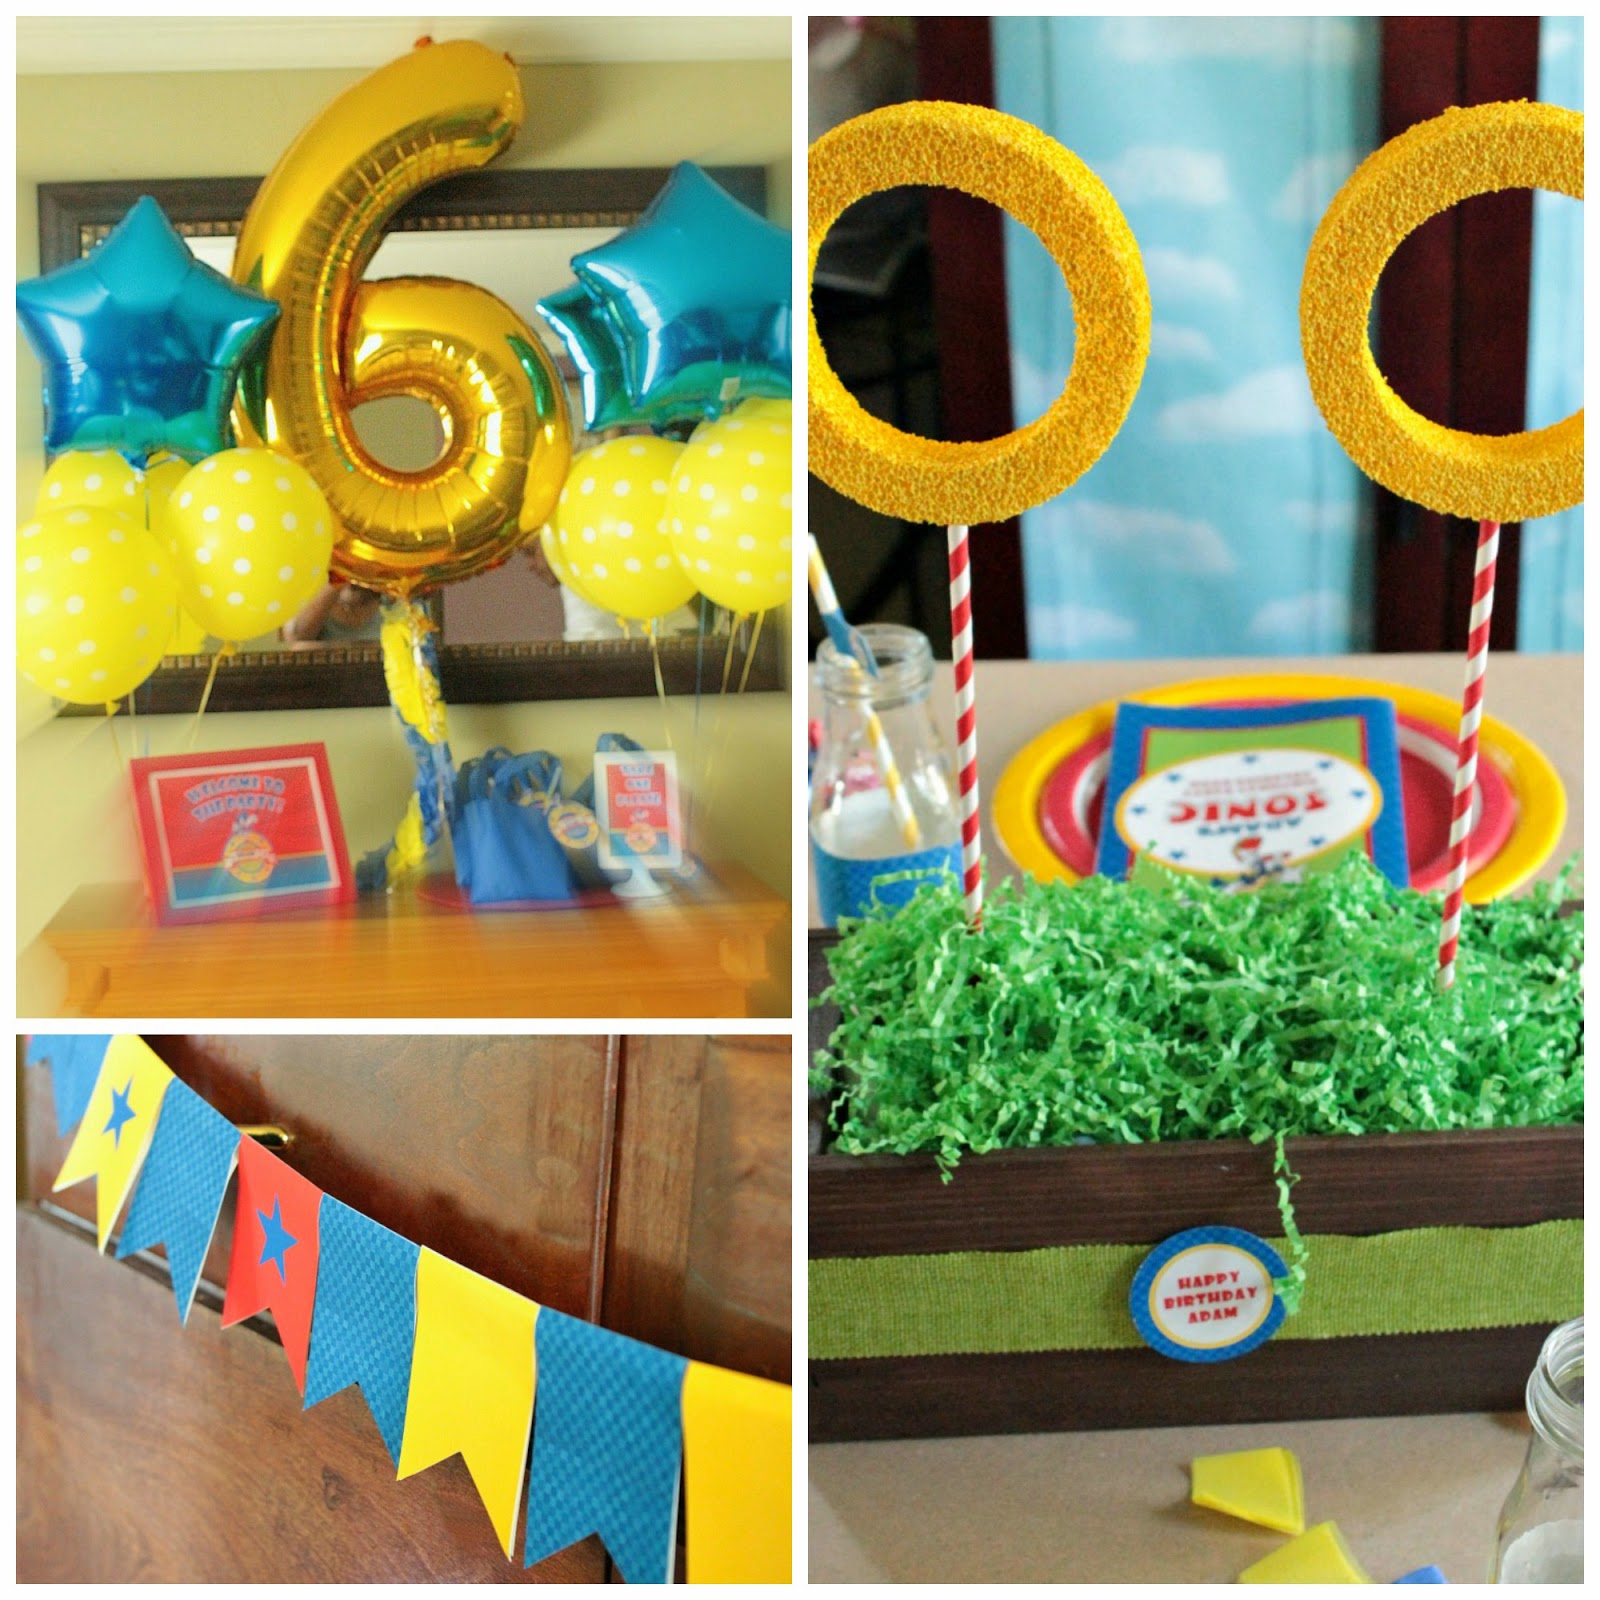 sonic the hedgehog party decor, sonic the hedgehog party supplies, sonic the hedgehog parties